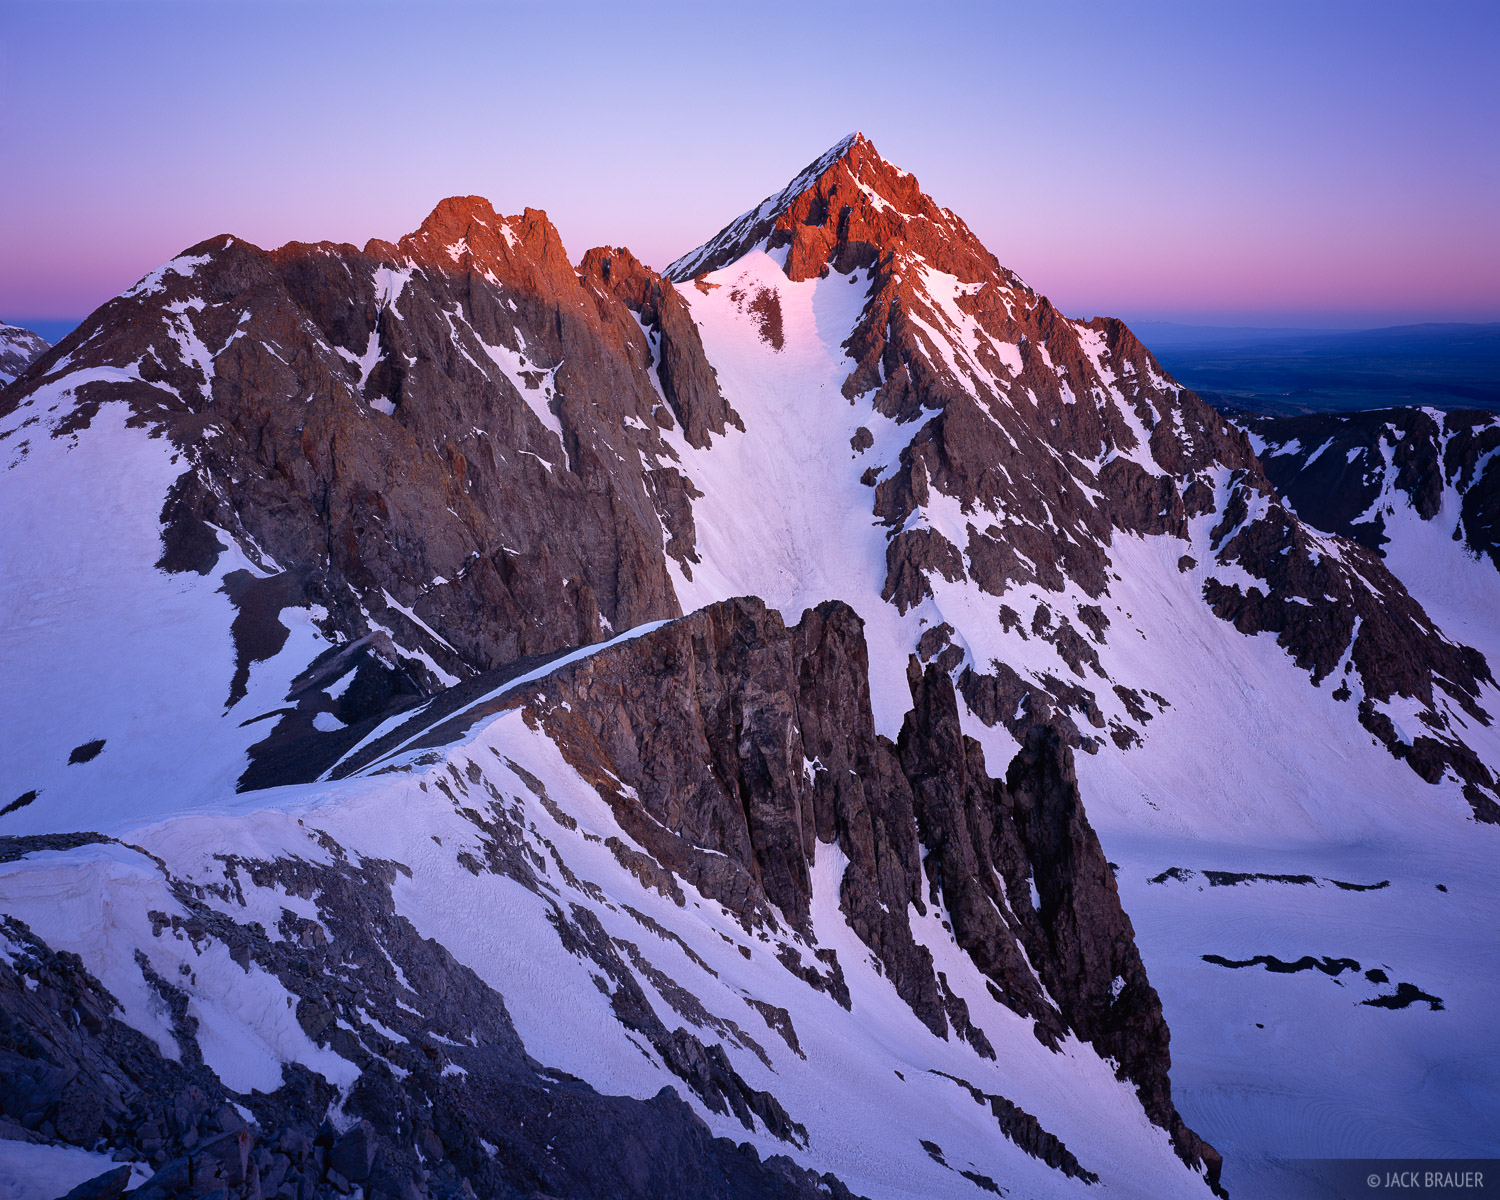 Sunrise alpenglow light shines on the summit of Mt. Sneffels, 14,156', as seen from the east - June.